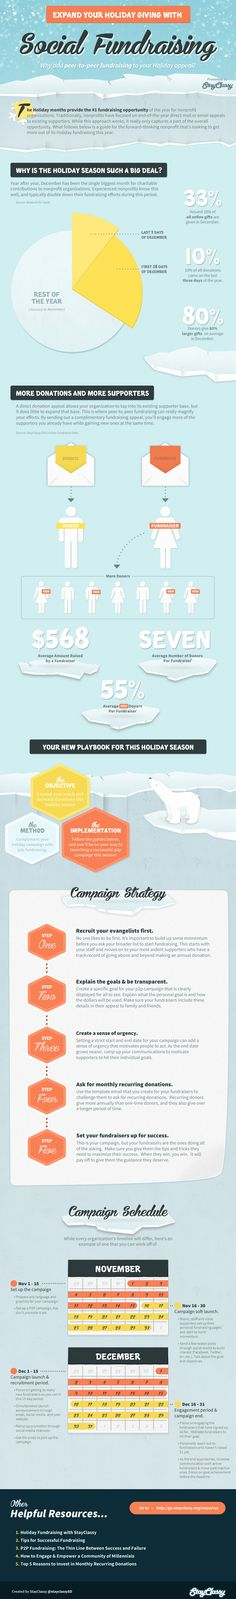 People make 80% larger #nonprofit #donations in December. #infographic